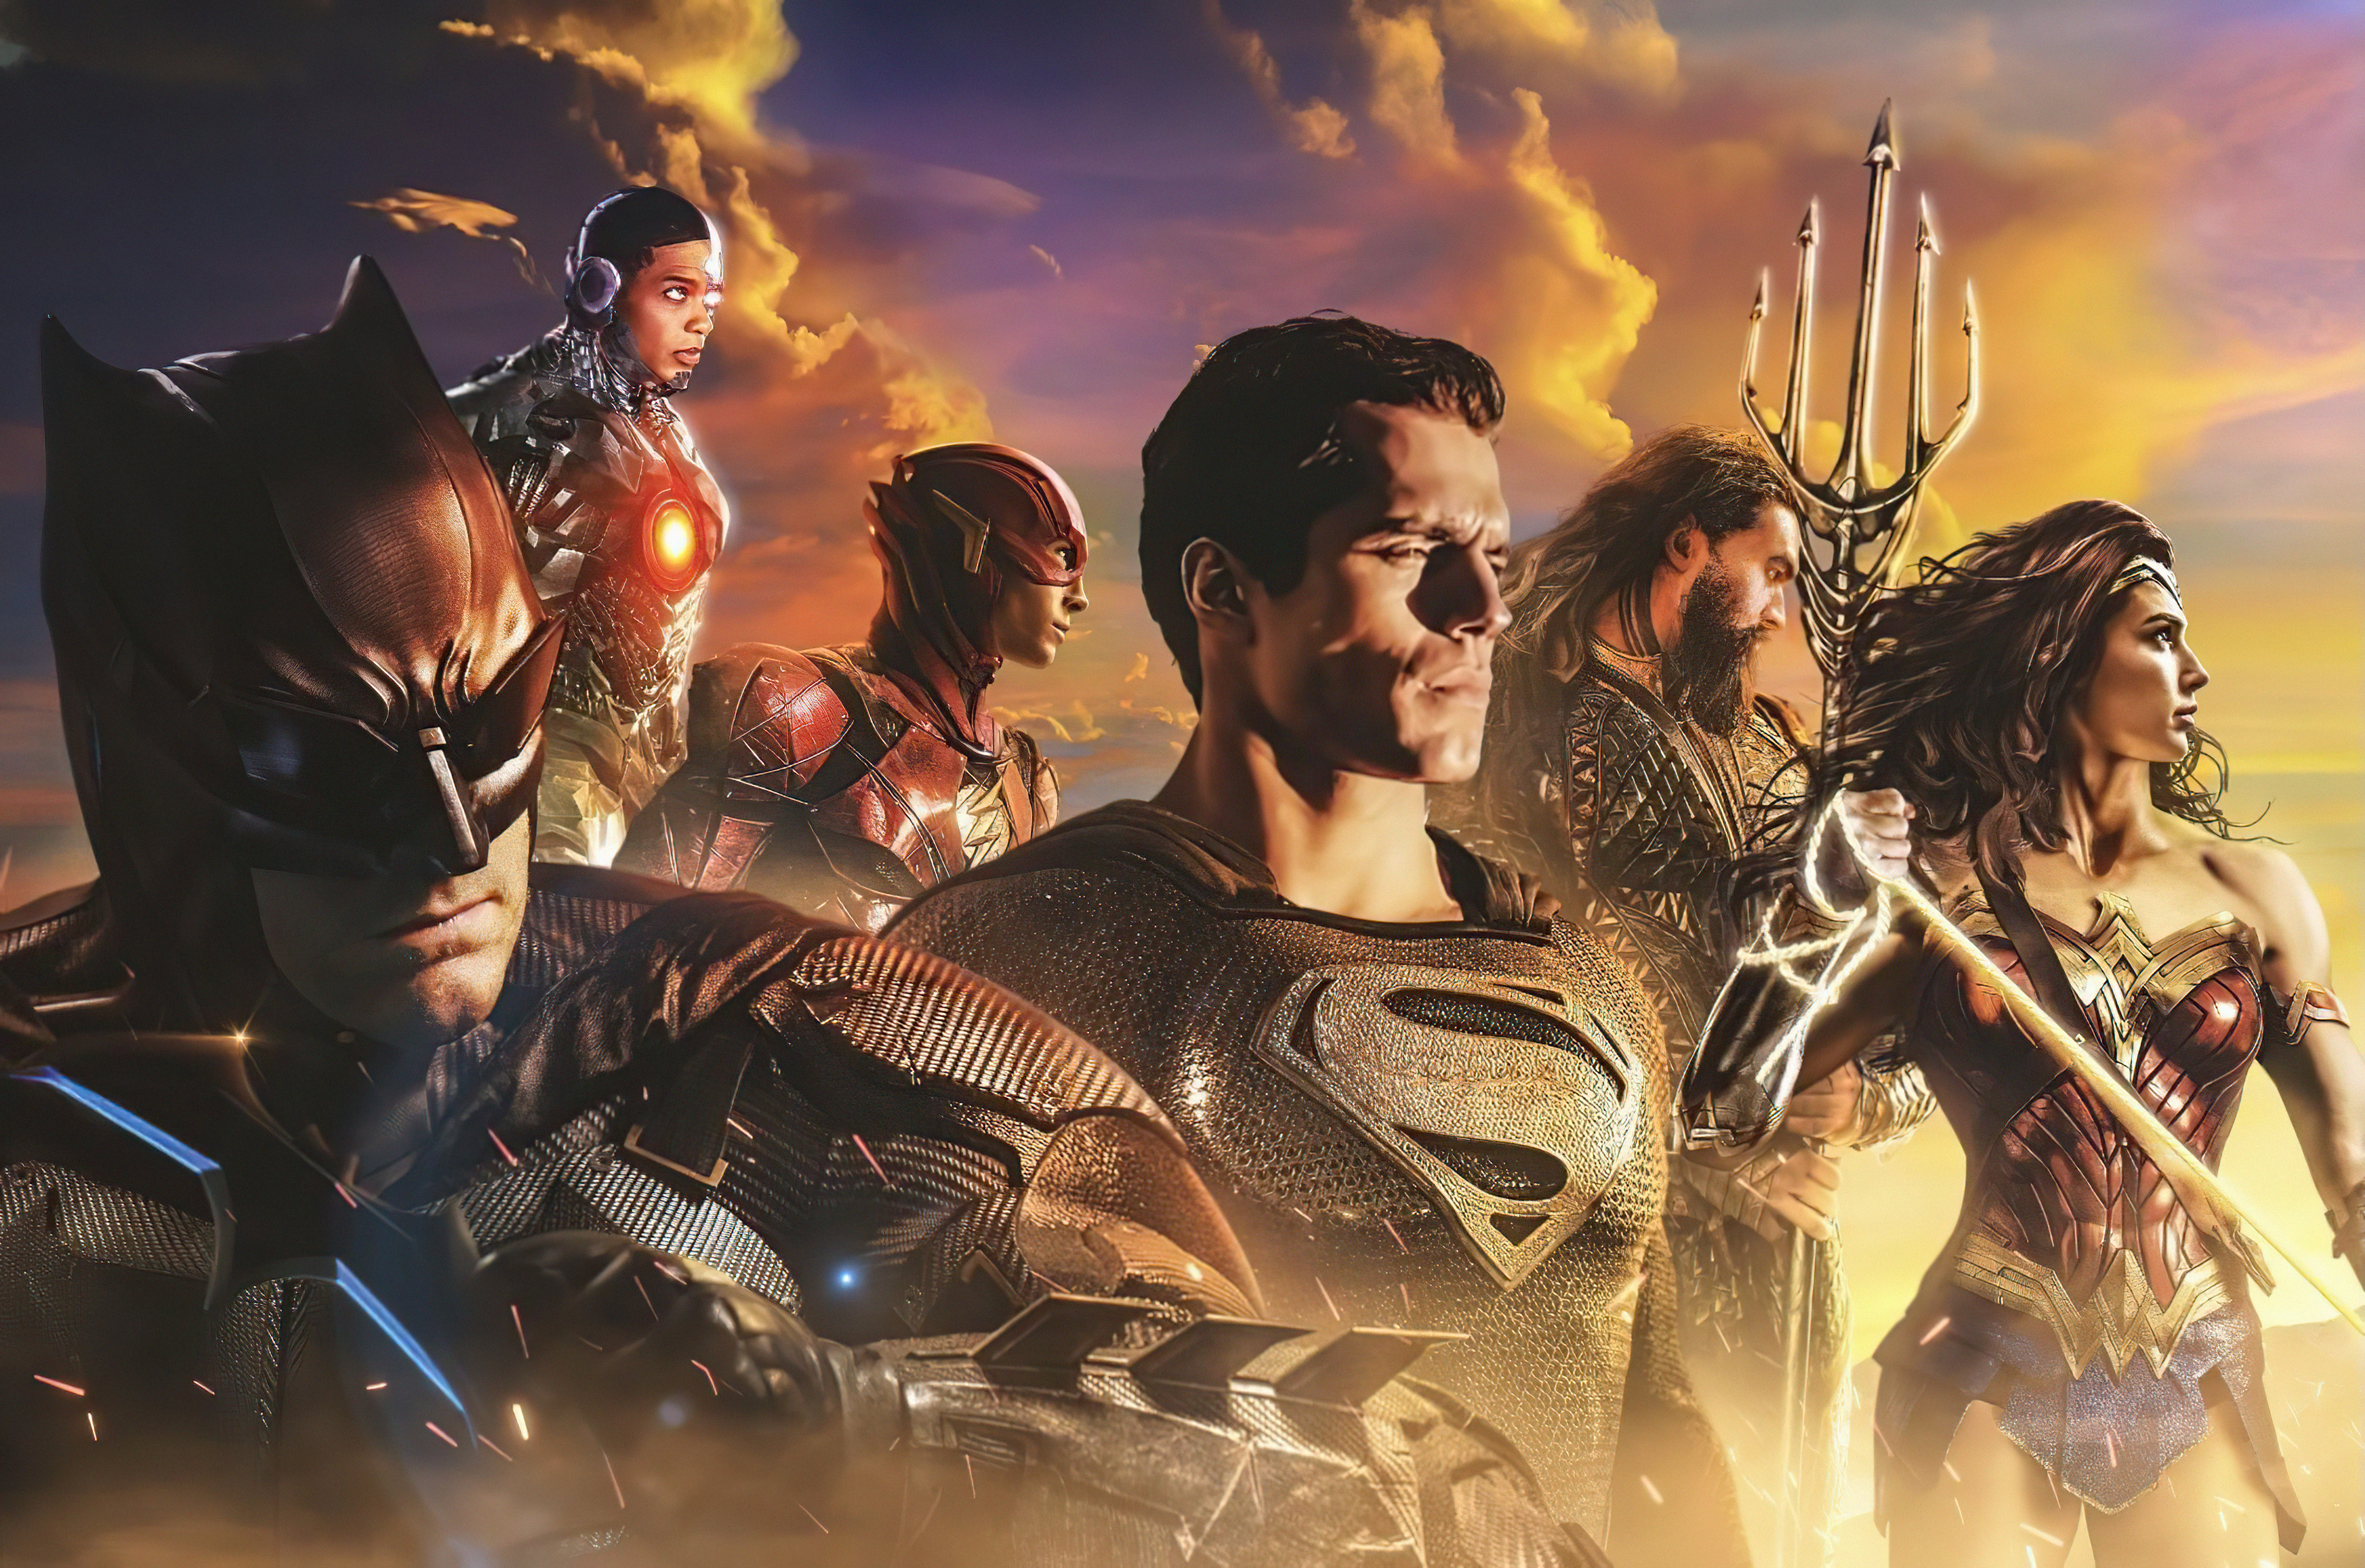 justice league zack synders cut 4k 1618166063 - Justice League Zack Synders Cut 4k - Justice League Zack Synders Cut 4k wallpapers